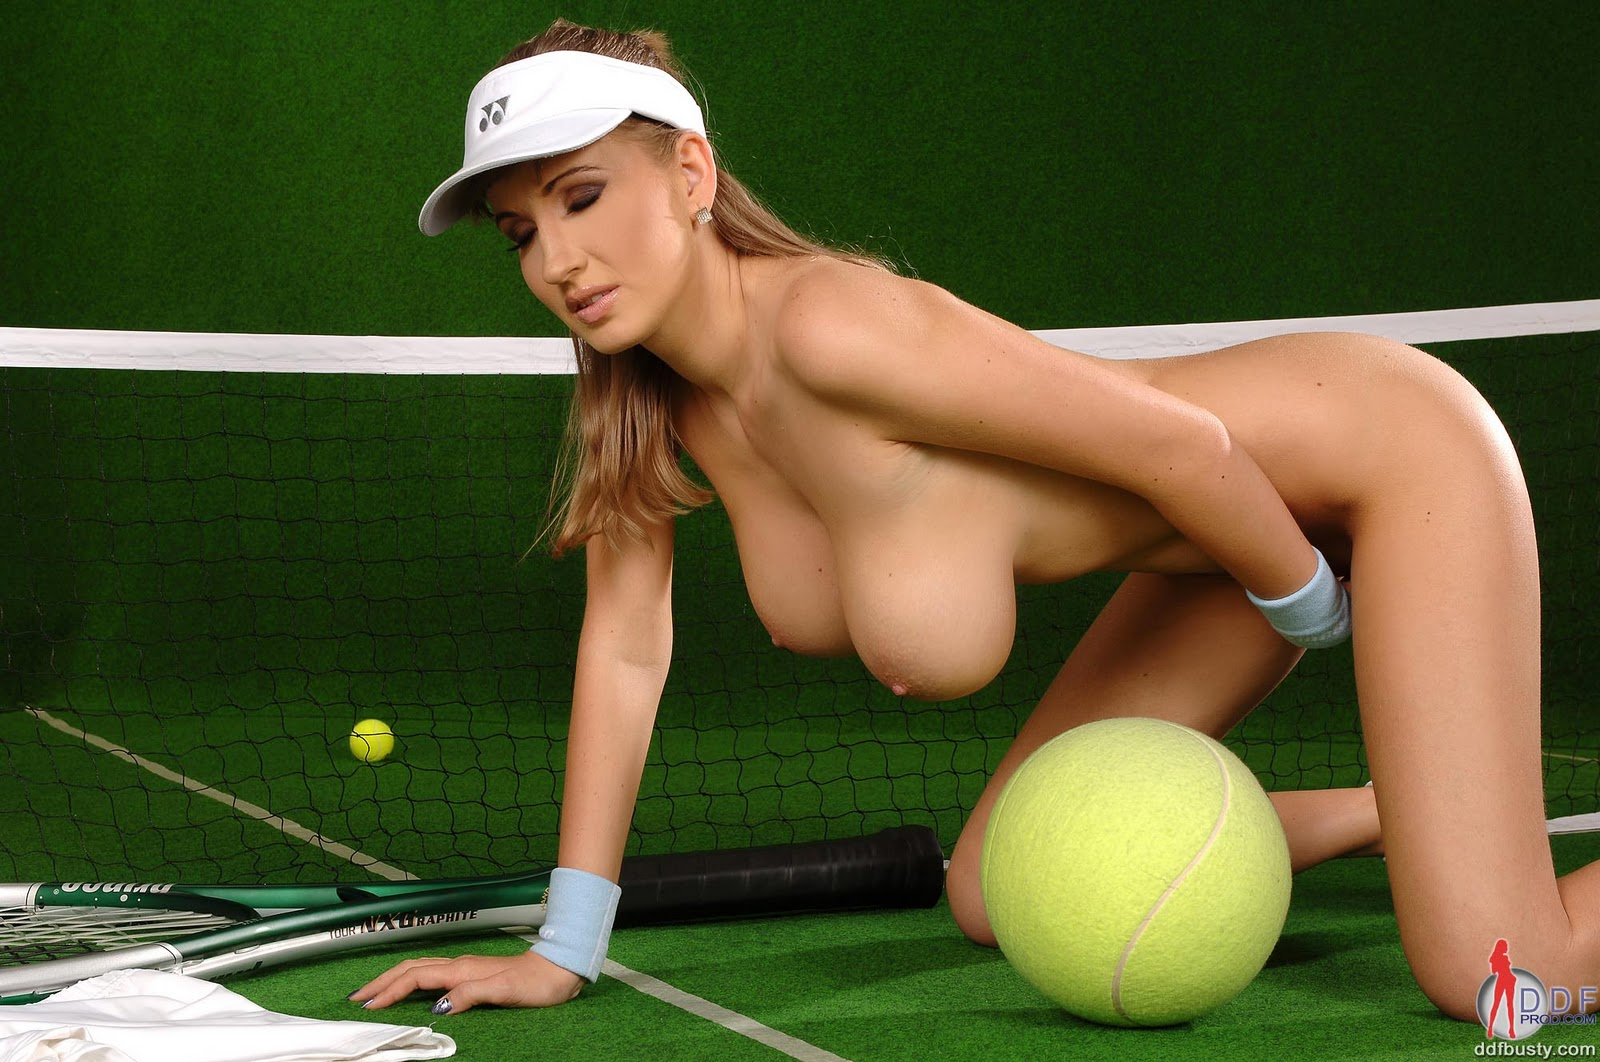 Nude Tennis Babes